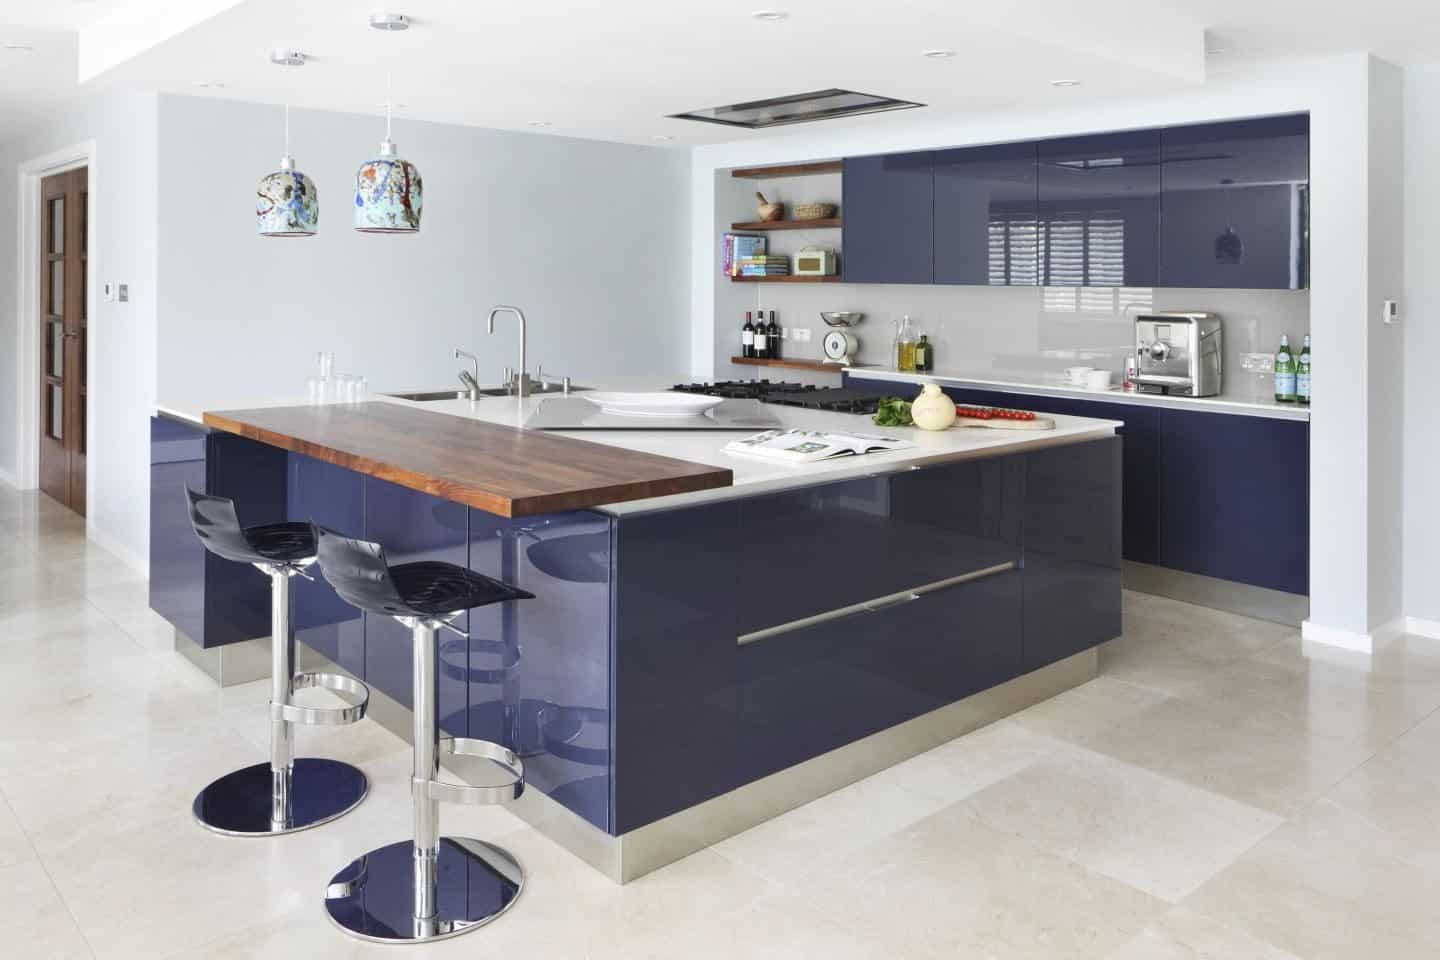 Hub Kitchens - Davoli purple kitchen